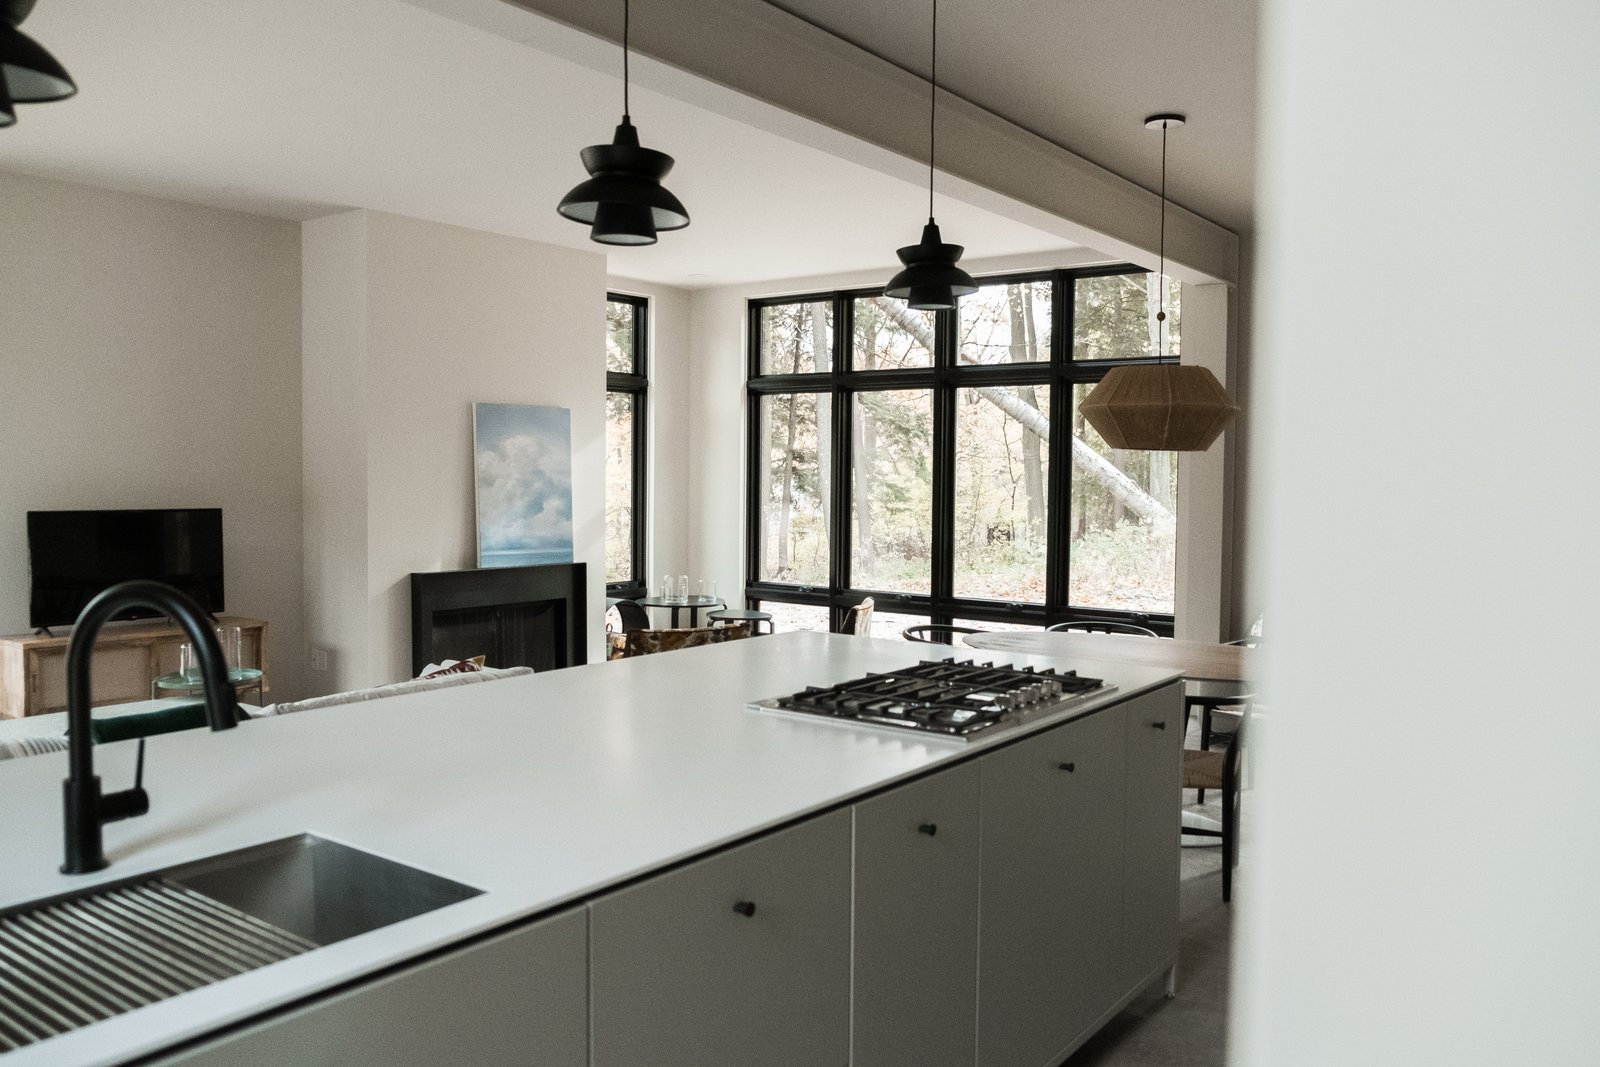 Kitchen, Engineered Quartz Counter, Concrete Floor, Range, Dishwasher, Undermount Sink, and Pendant Lighting View from kitchen island to great room with steel mantel fireplace and floor-to-ceiling windows.  North Shore #7 by Hygge Supply